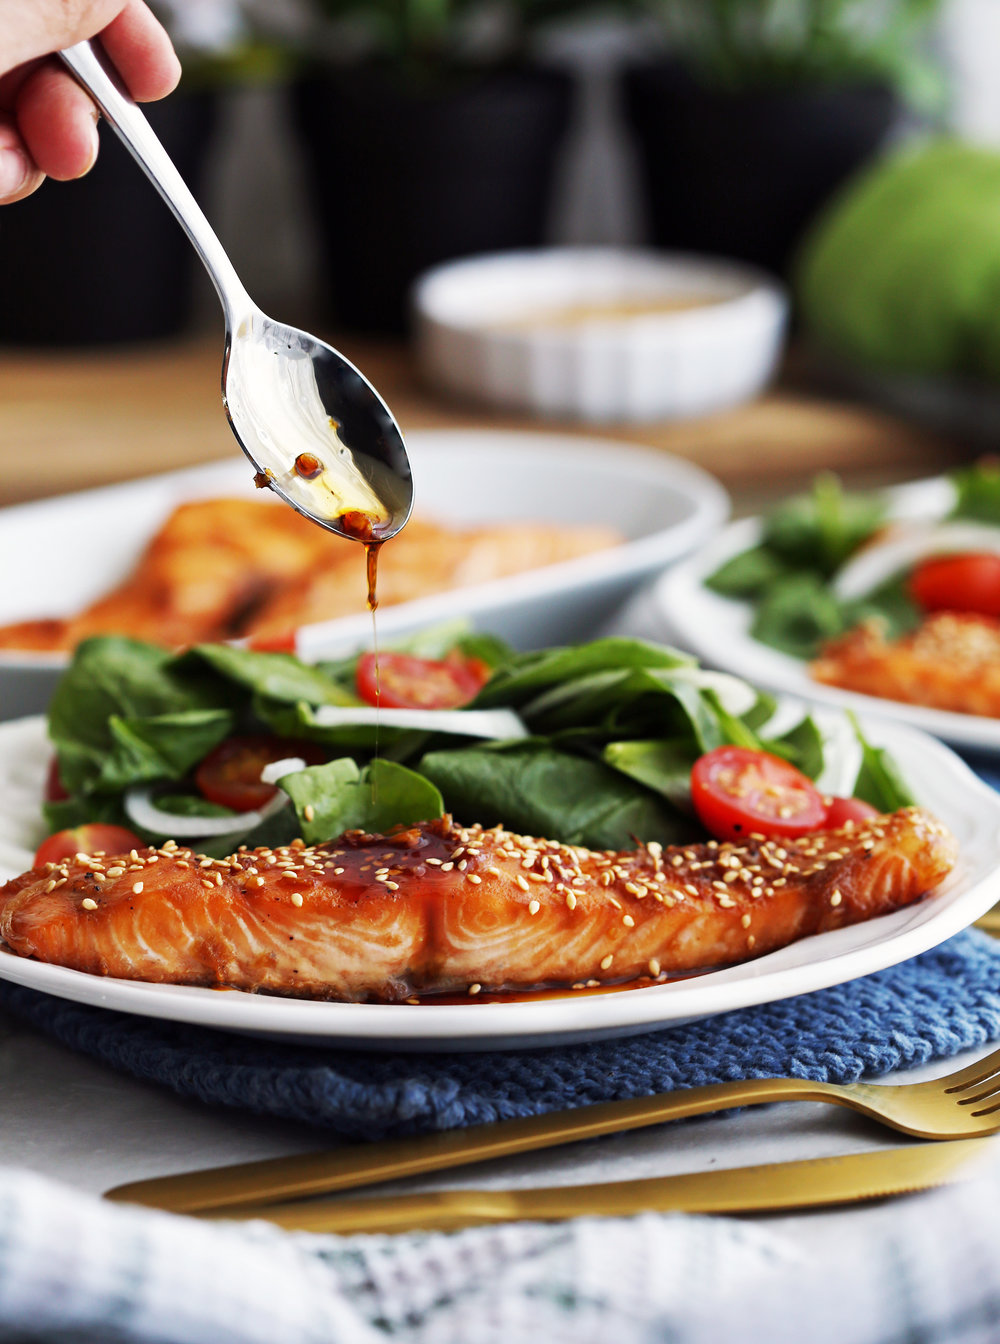 Maple-soy baked salmon on a white plate topped with a spoonful of maple-soy sauce.